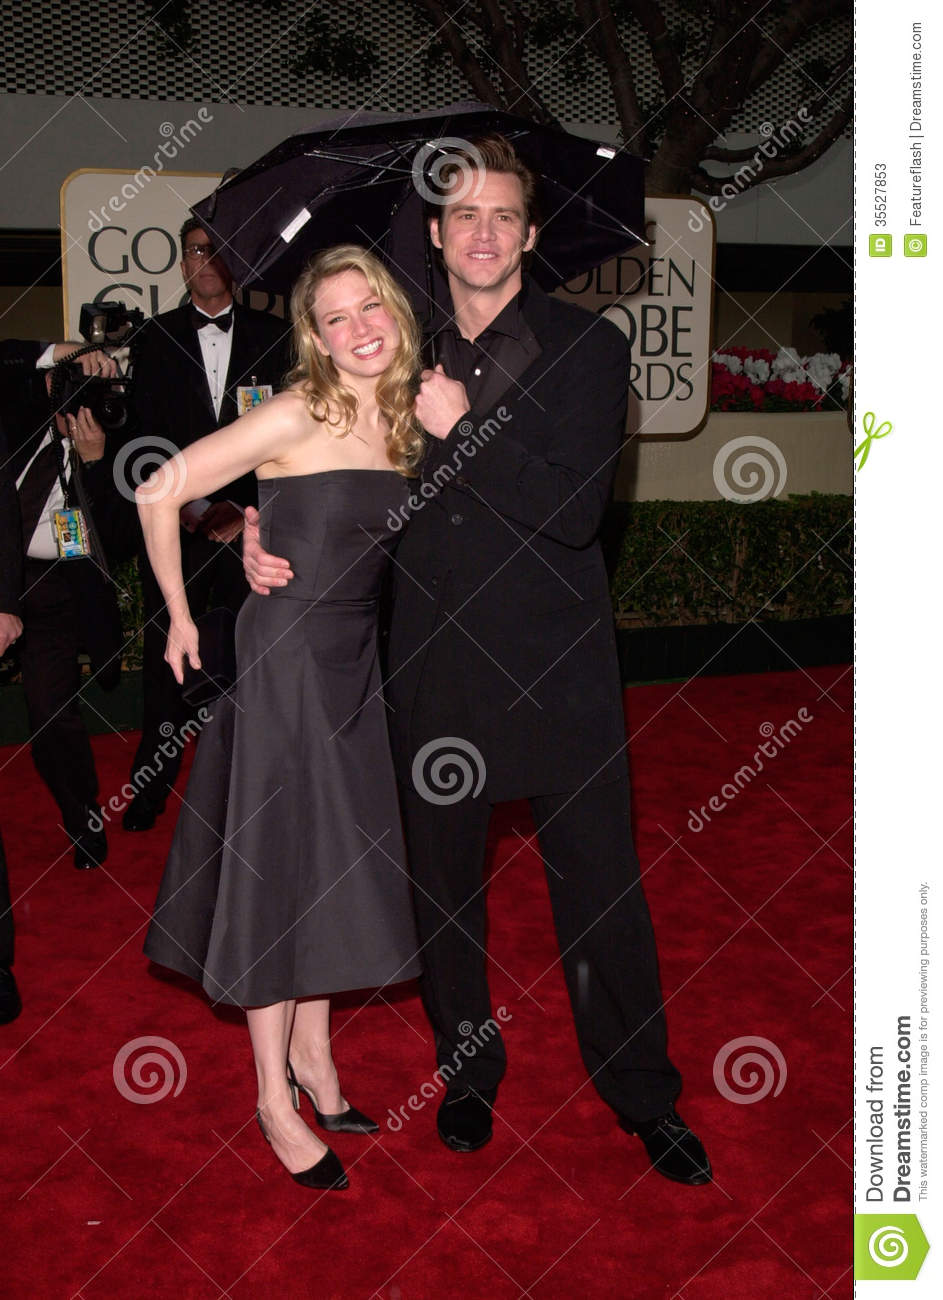 Jim Carrey and Renee Zellweger - Dating Gossip News Photos